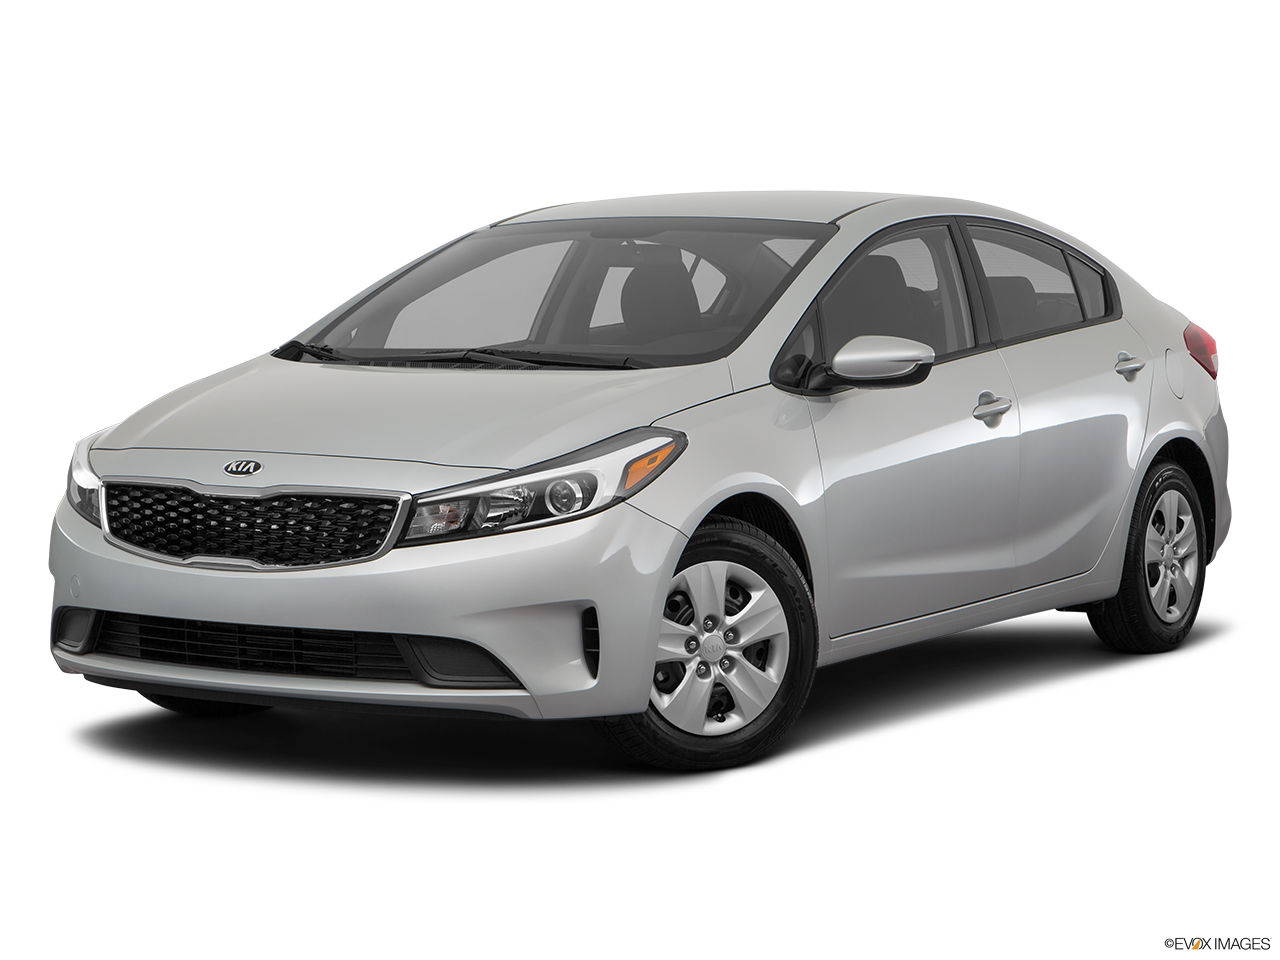 Test Drive the 2017 KIA Forte at KIA Cerritos serving LA and OC